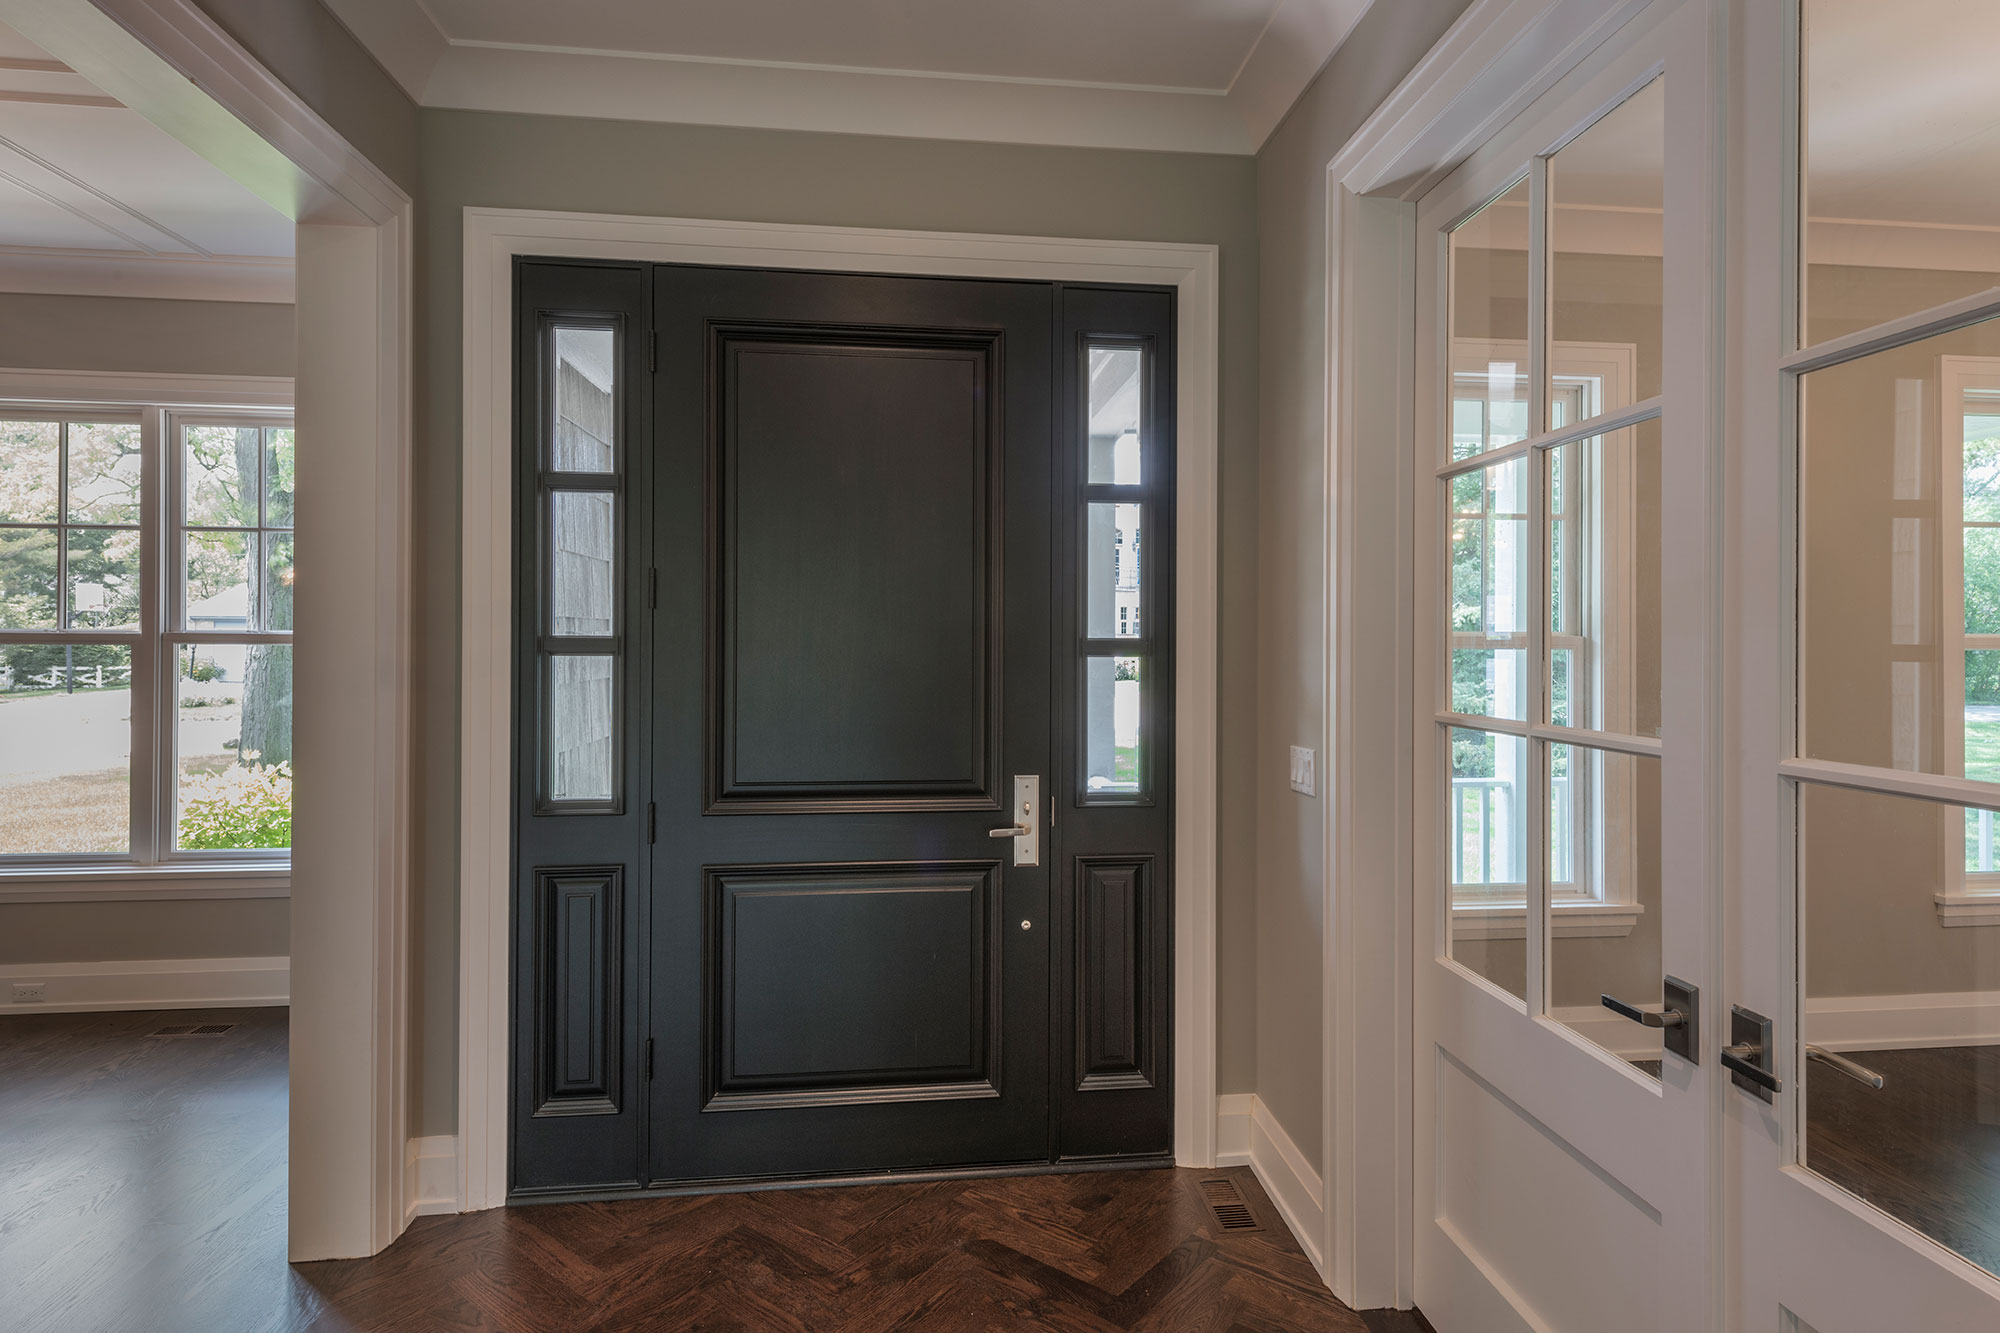 Wood Front Entry Doors in-Stock | Classic Solid Wood (Euro Technology) Front Entry Door  DB-301PW 2SL - Glenview Doors - Custom Doors in Chicago